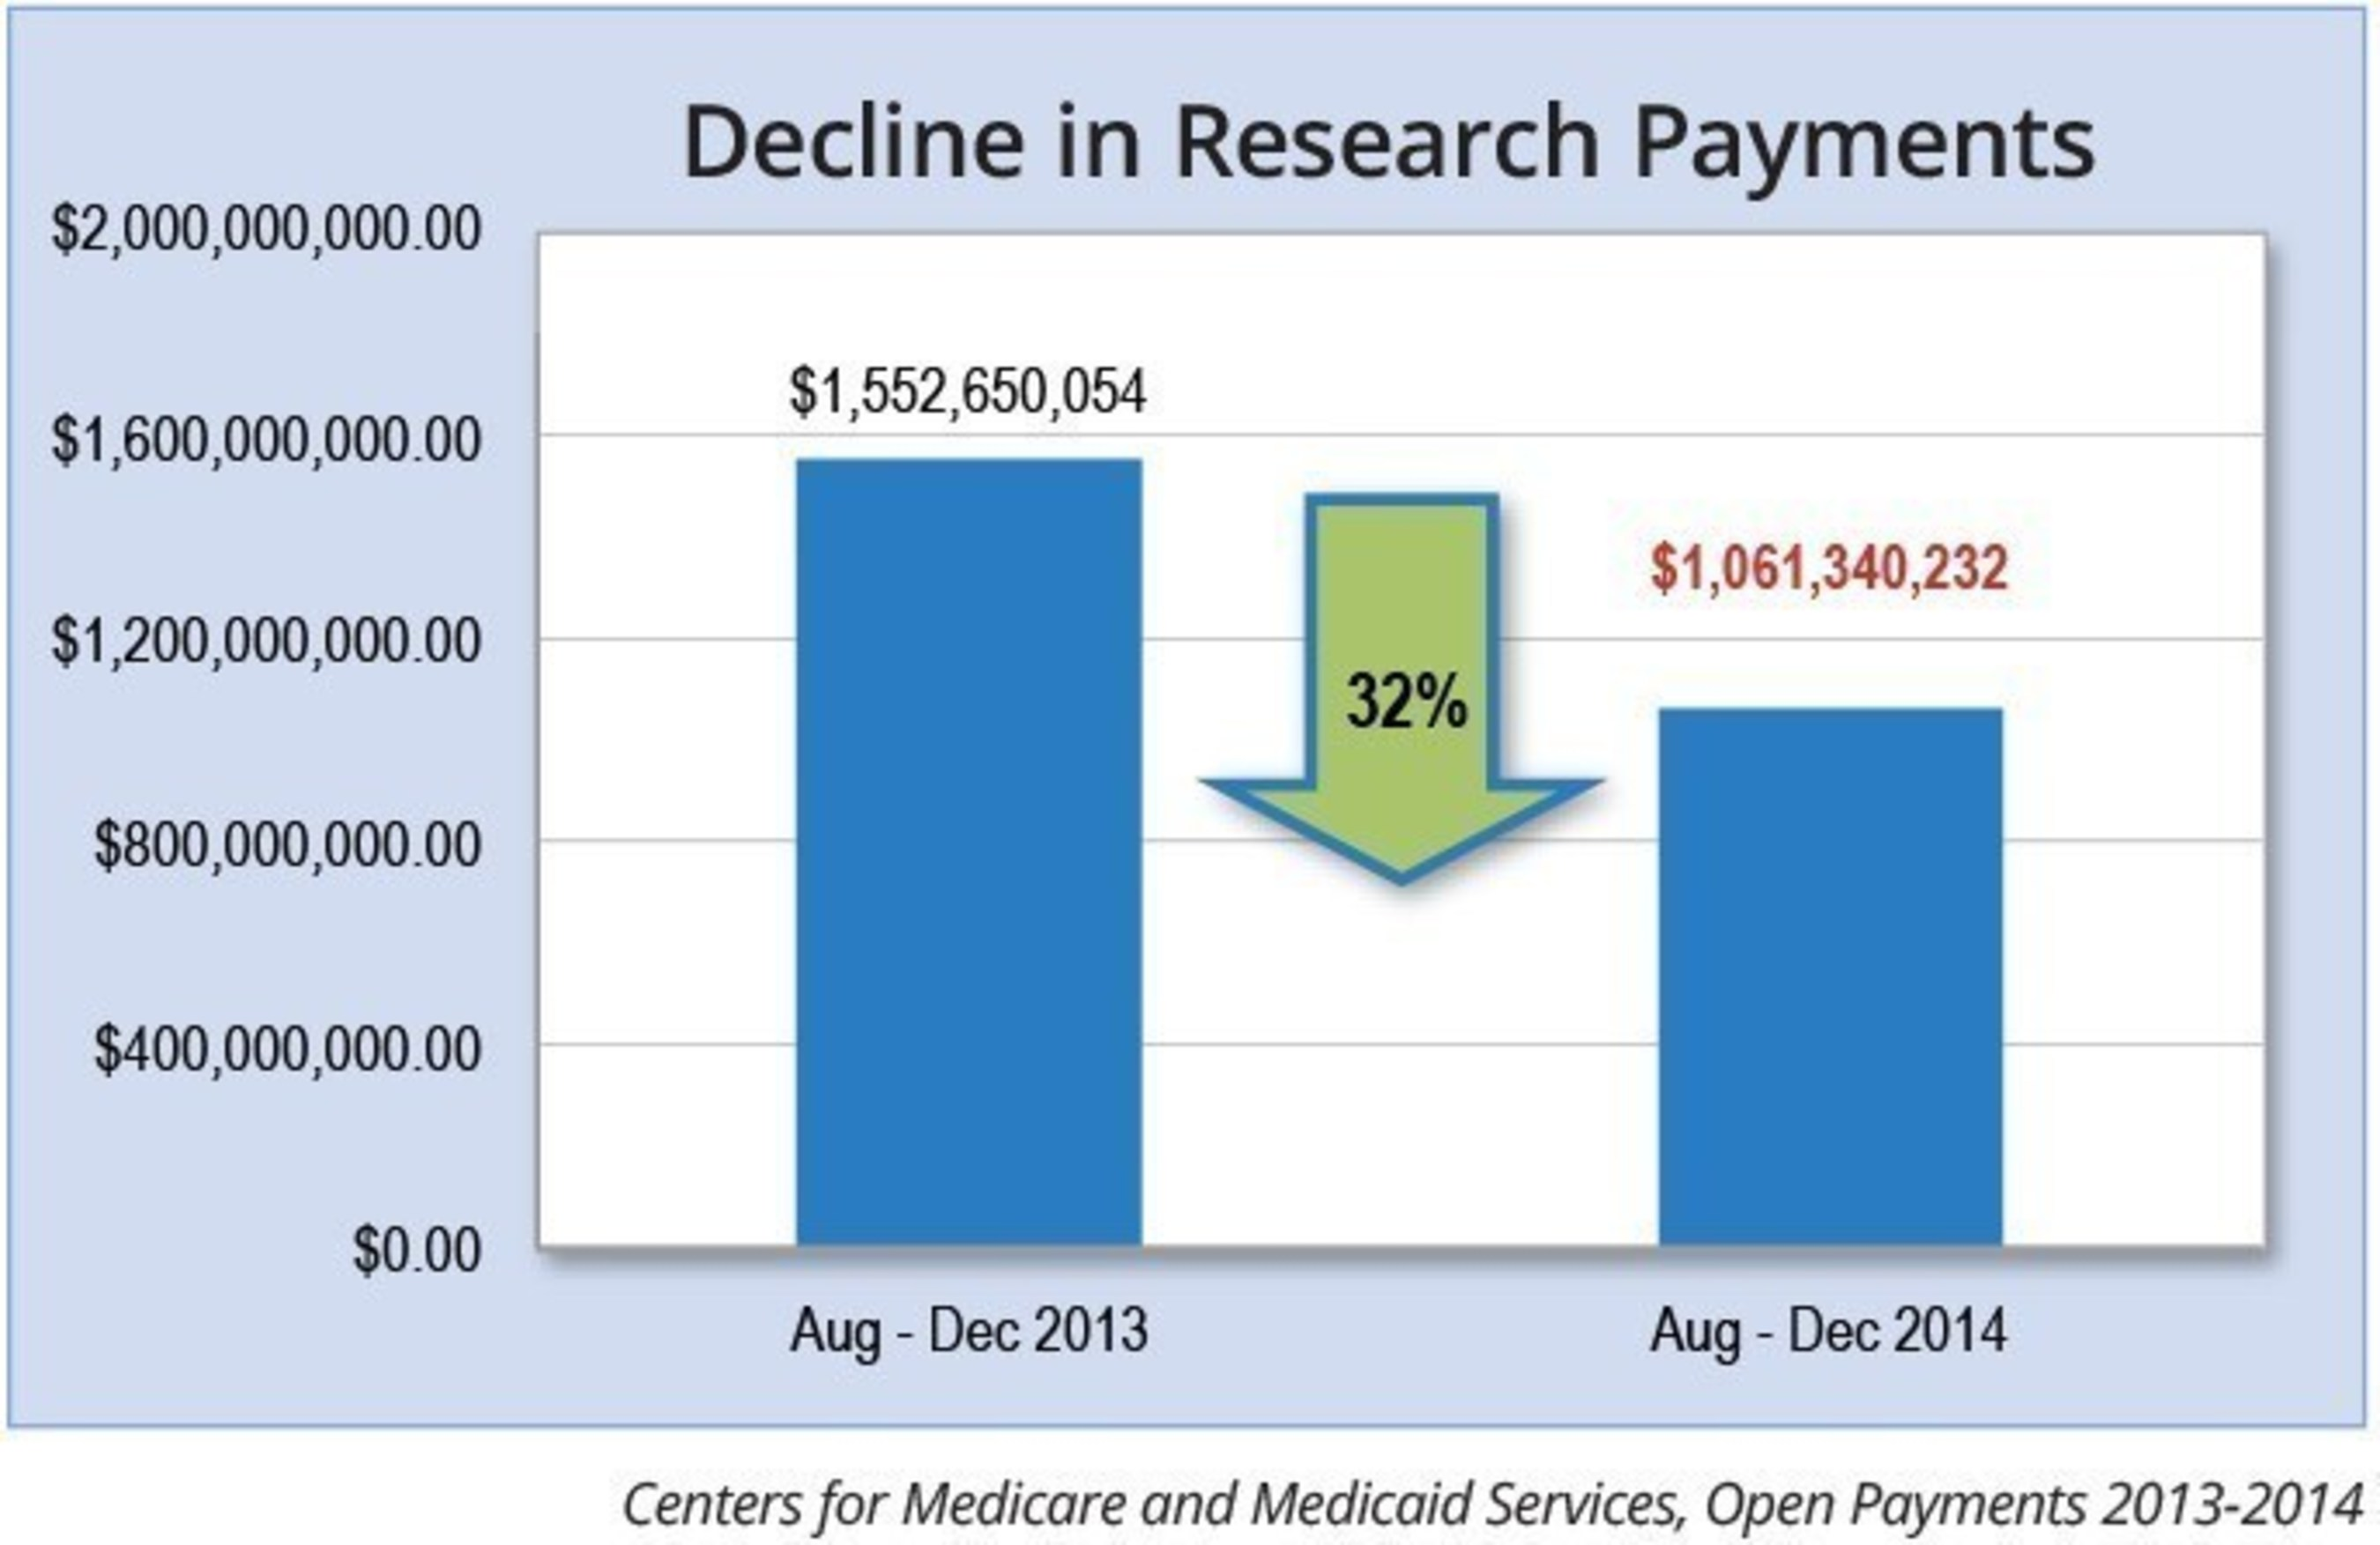 U.S-based clinical research dropped 32 percent in the first year-over-year comparison since Open Payments data started to be collected, according to a new analysis by Life Science Compliance Update newsletter.